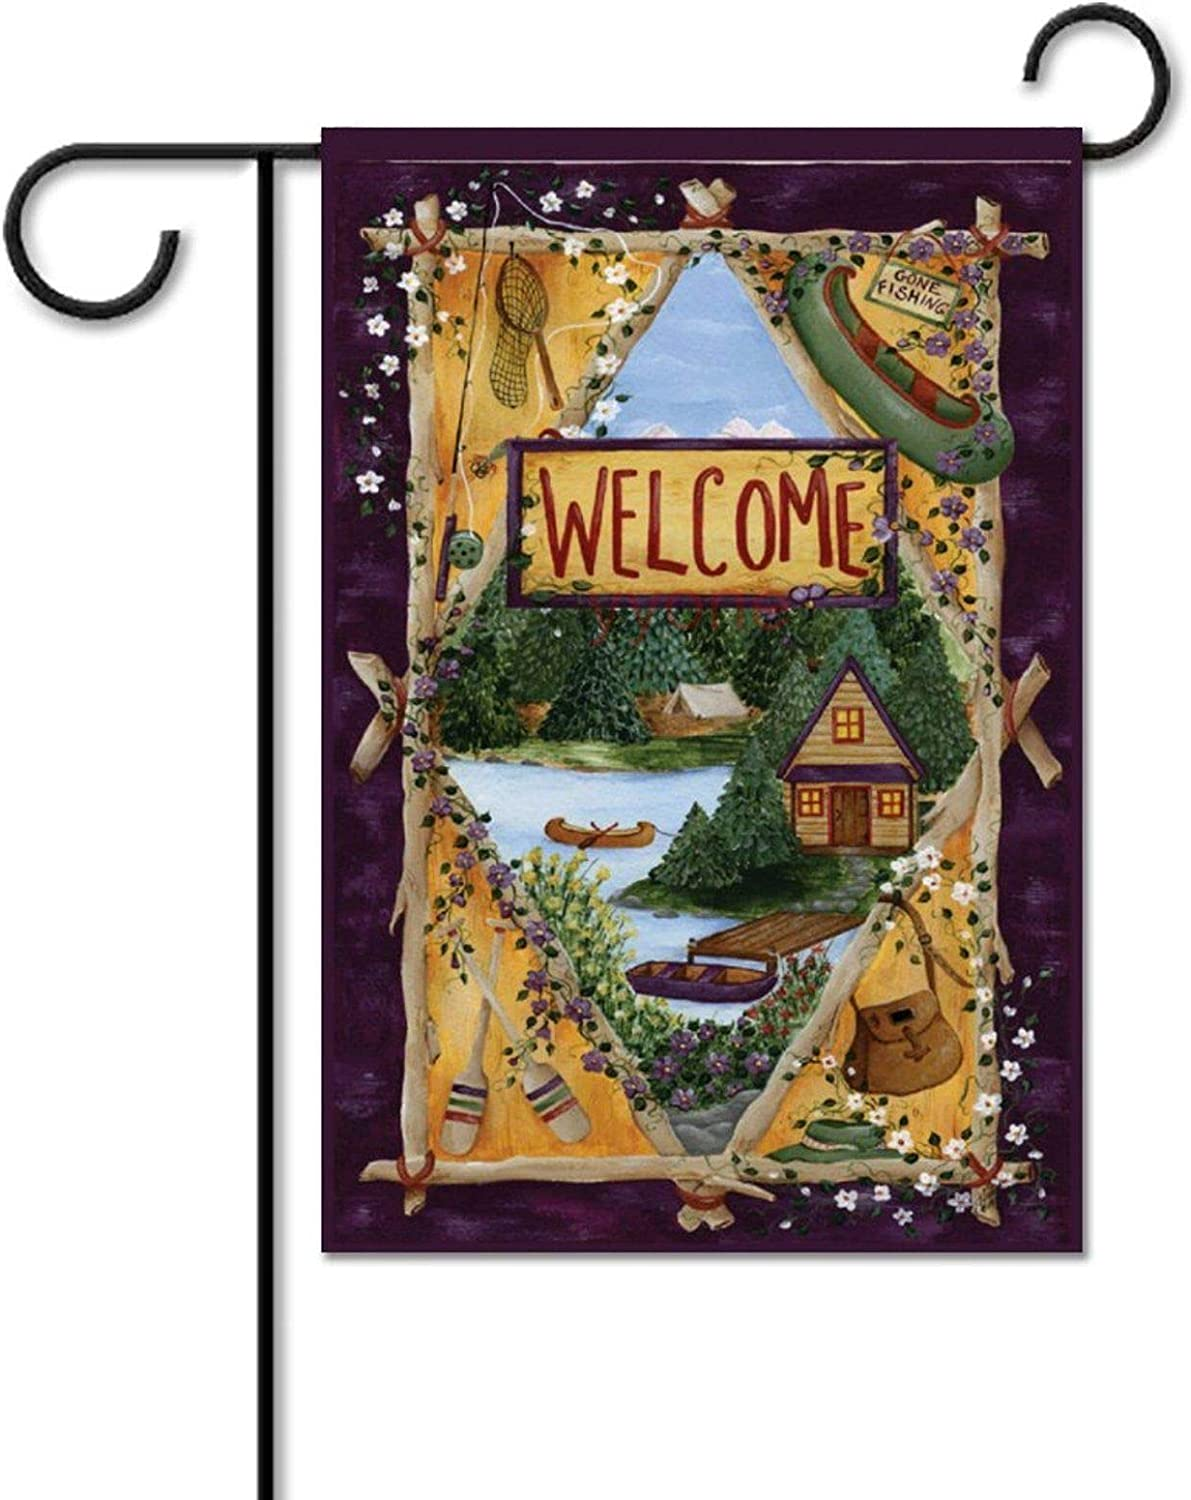 yyone Garden Flag Double Sided Lakeside Welcome Colorful Lake Cabin Outdoors Canoe for Patio Lawn Rustic Farmhouse Flag Yard Outdoor Decoration 12 X 18 Inch